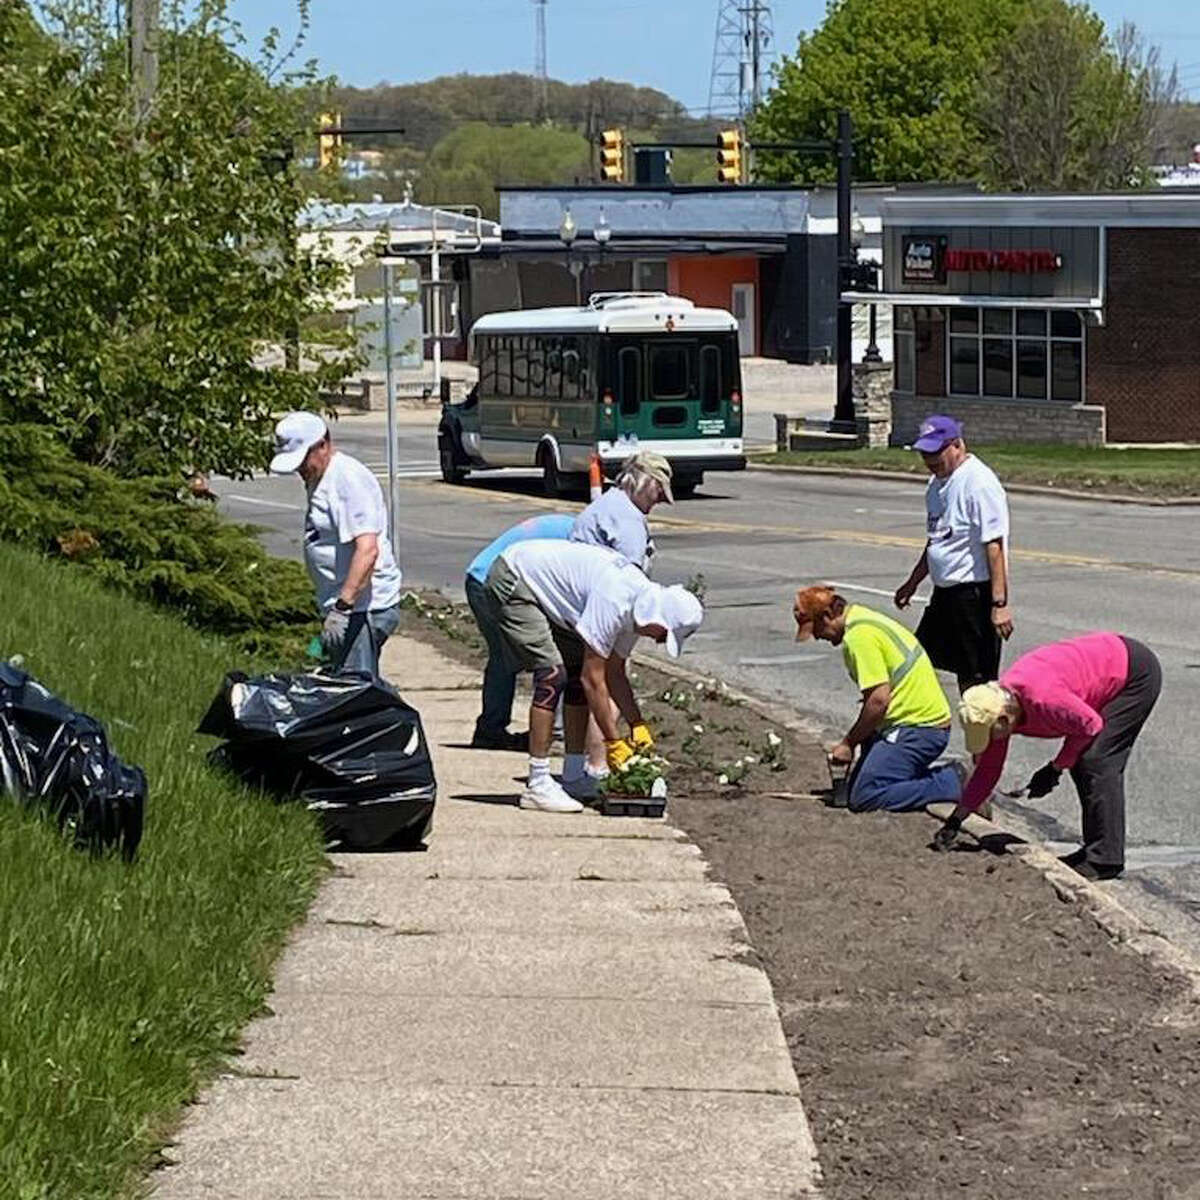 A group of volunteers from the Manistee Senior Softball League and Spicer Group could be seen near Cypress Street and River Street on Tuesday for the Blossom Boulevard Manistee planting efforts.